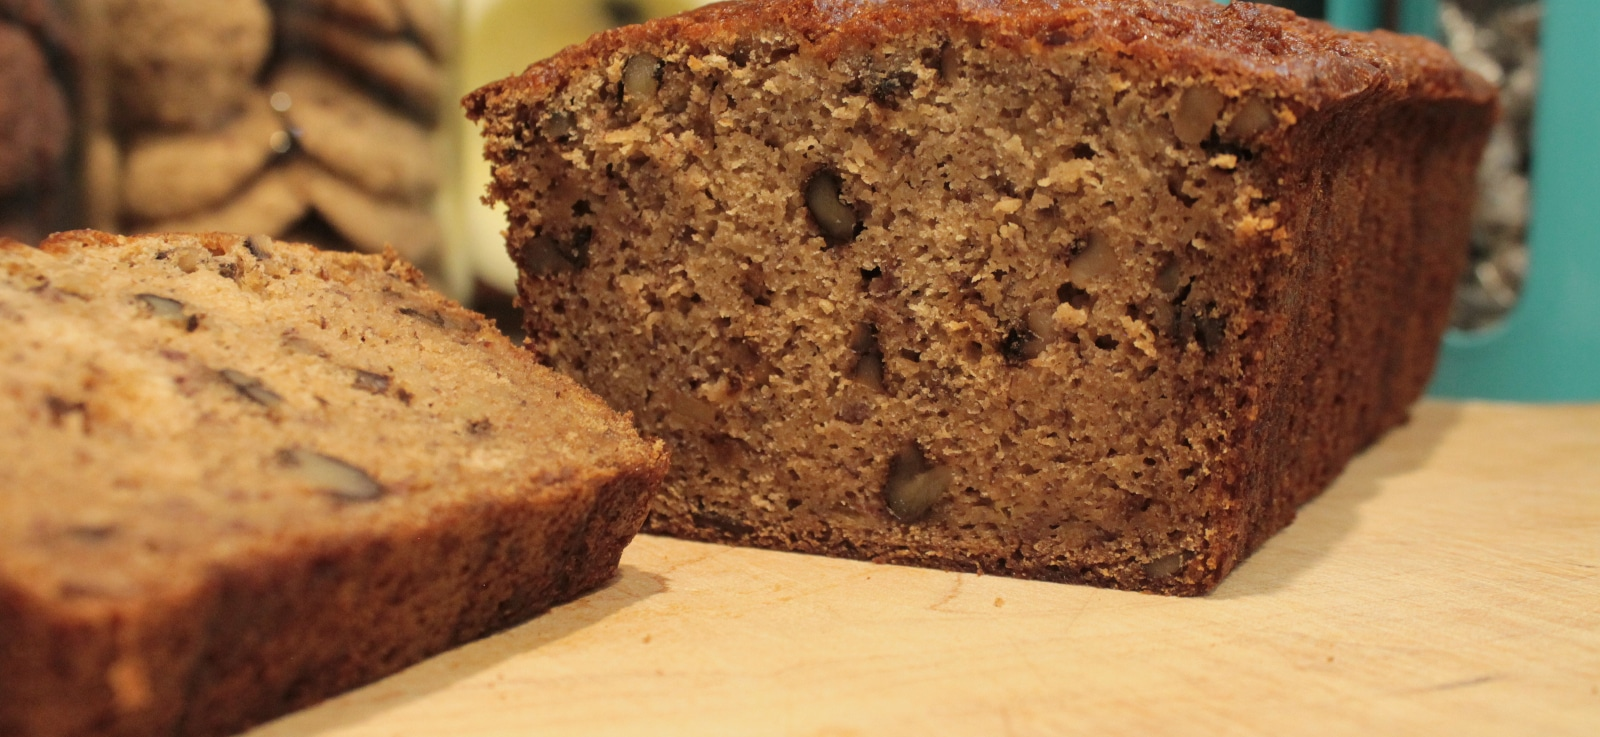 Dedicated Gluten Free Bakery in Glens Falls has Banana Nut Bread